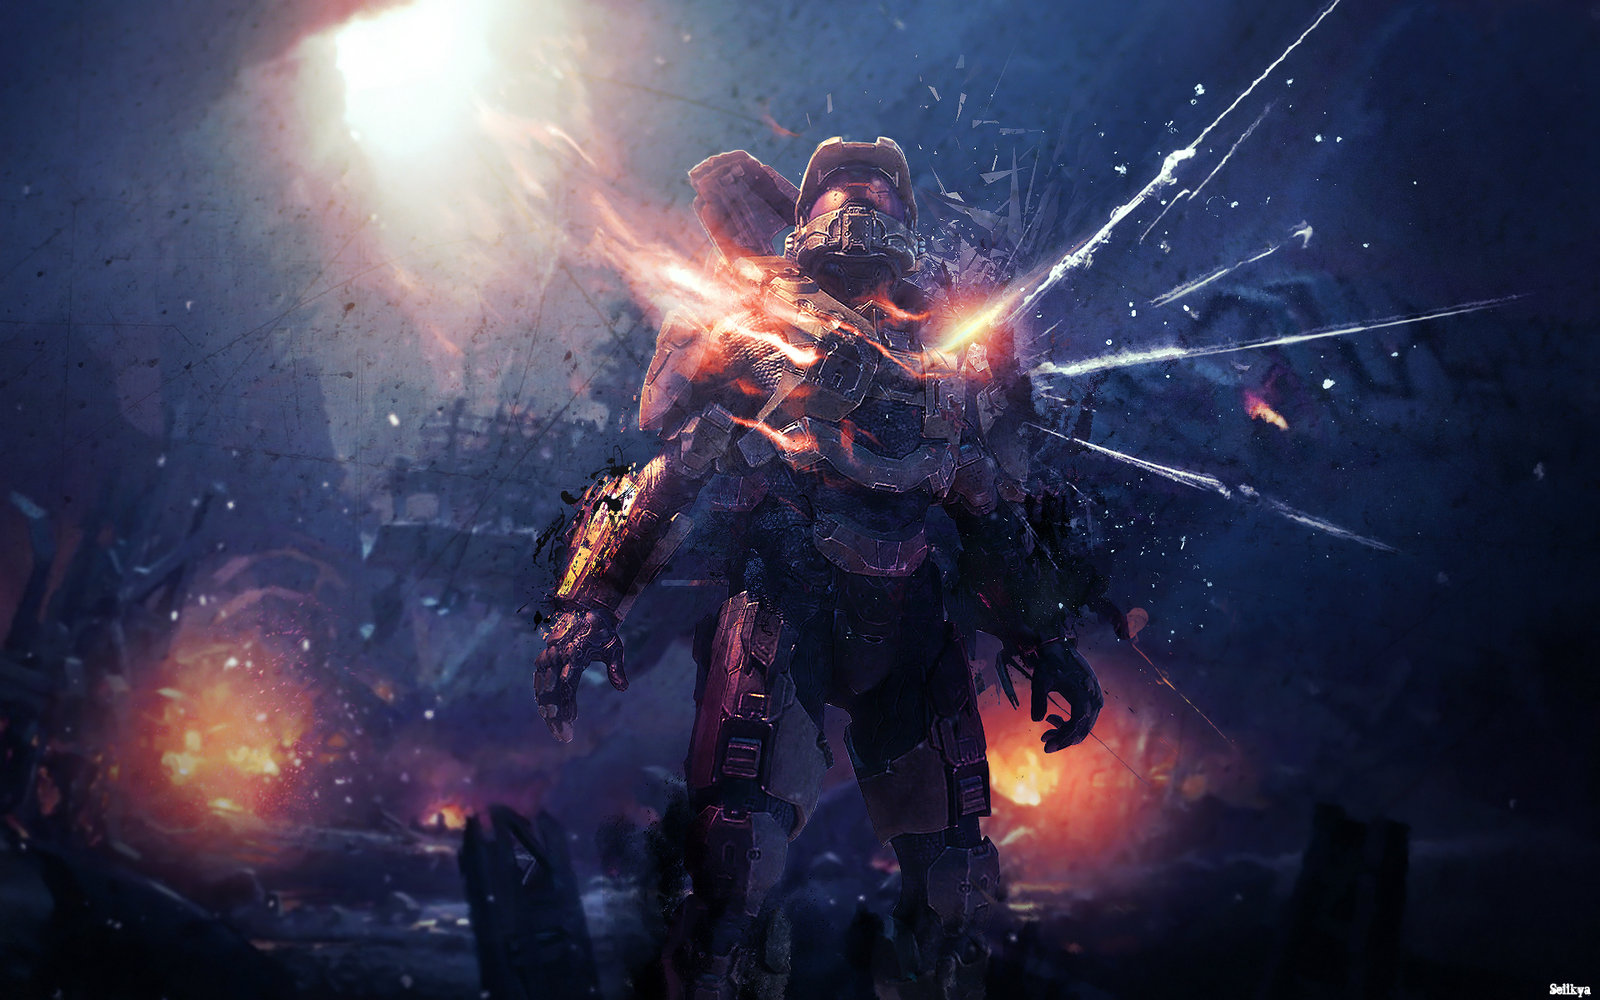 Free Download Halo 5 Guardians Wallpaper 1 1600x1000 For Your